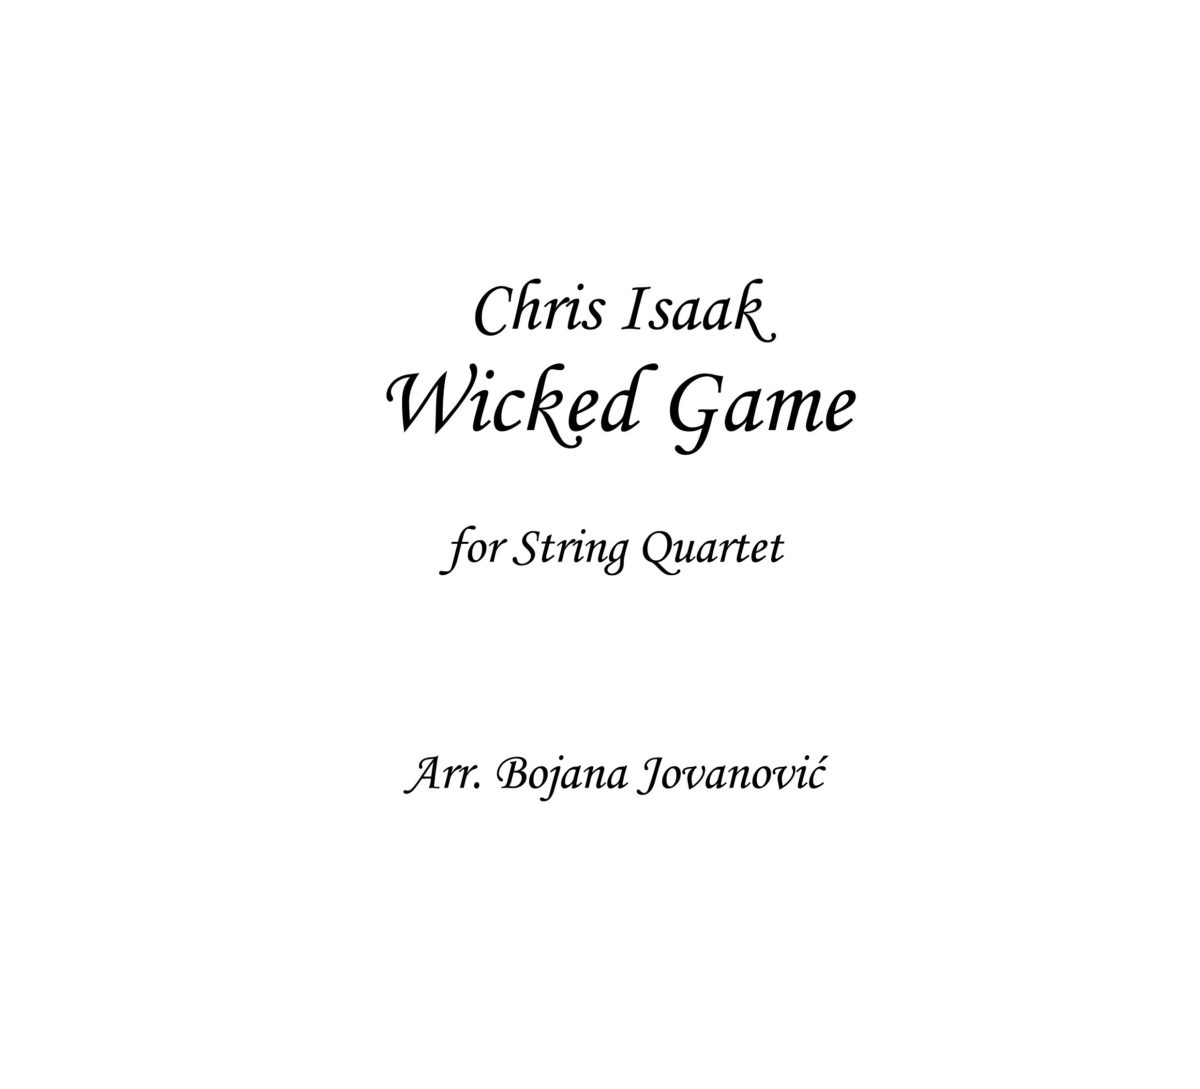 Wicked Game (Chris Isaak) - Sheet Music